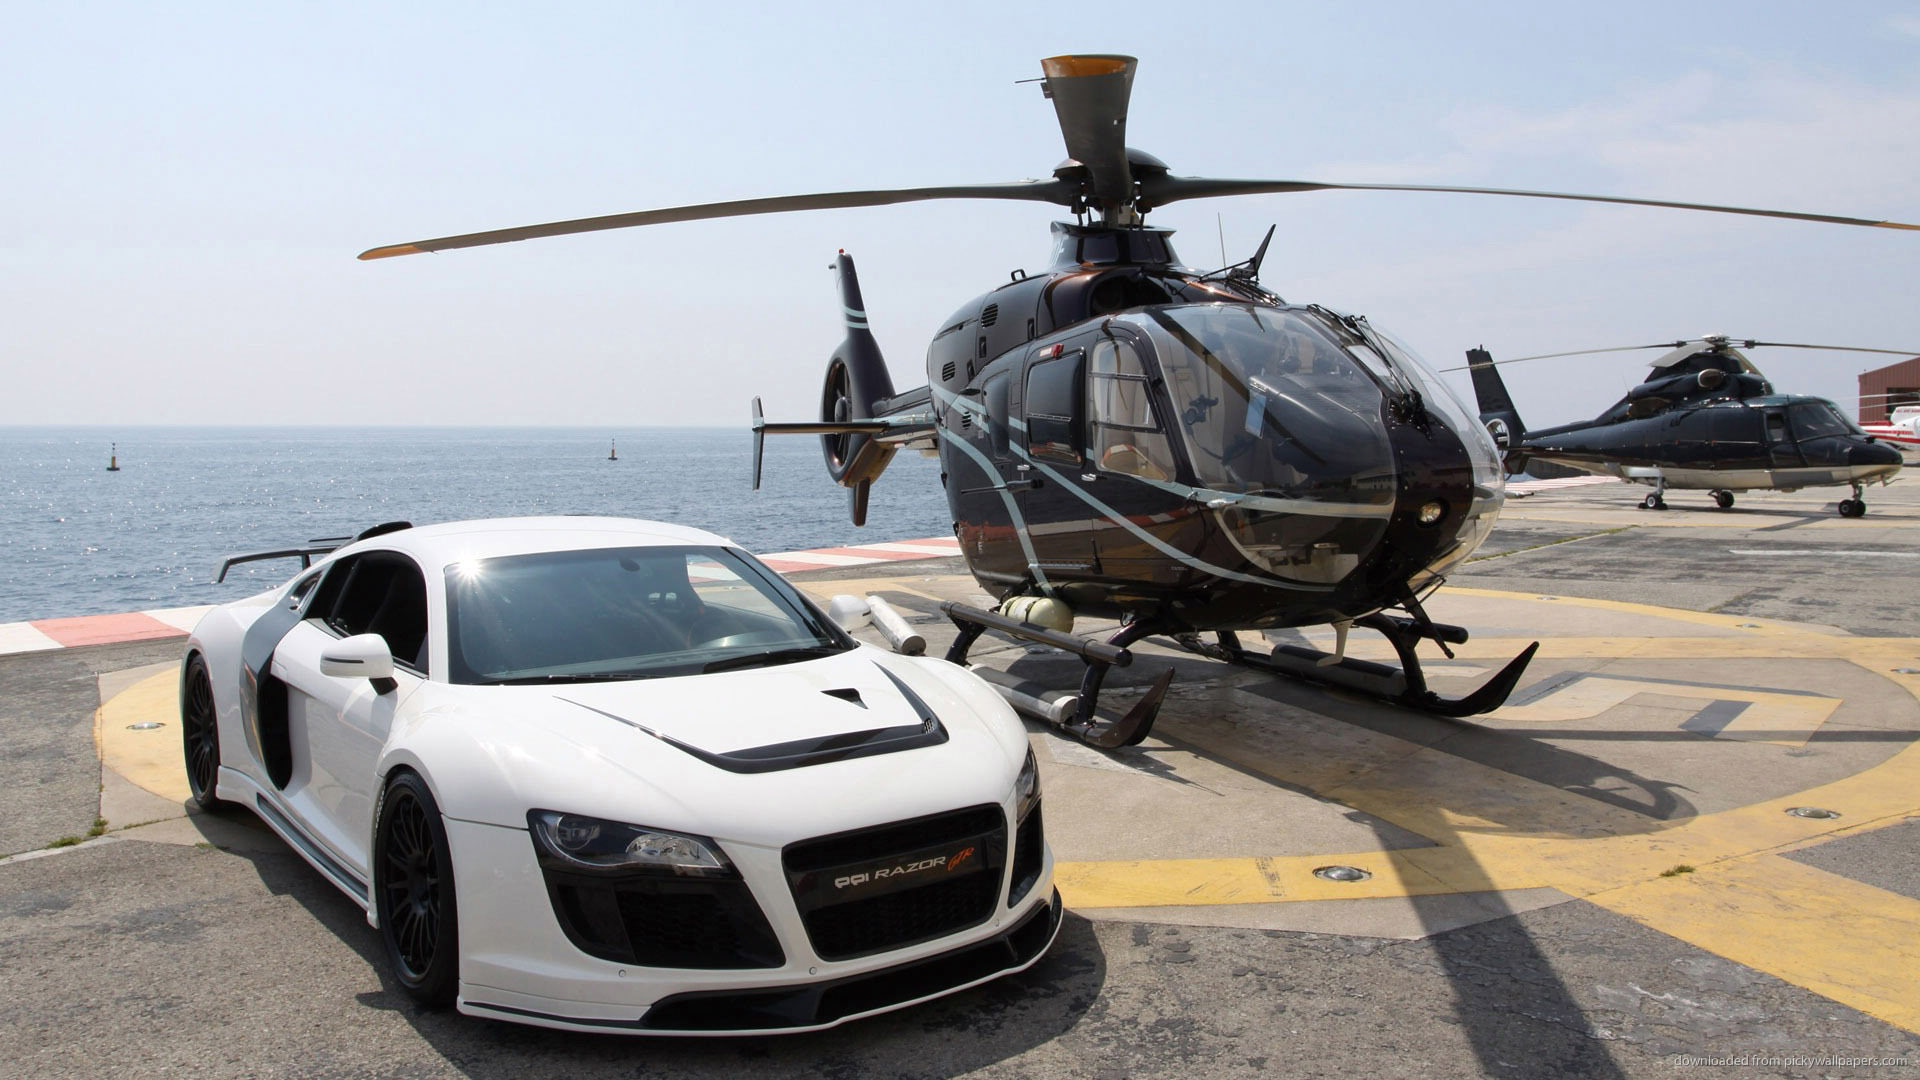 1920x1080 Helicopter Audi Wallpaper #19328 Wallpaper | High Resolution ...